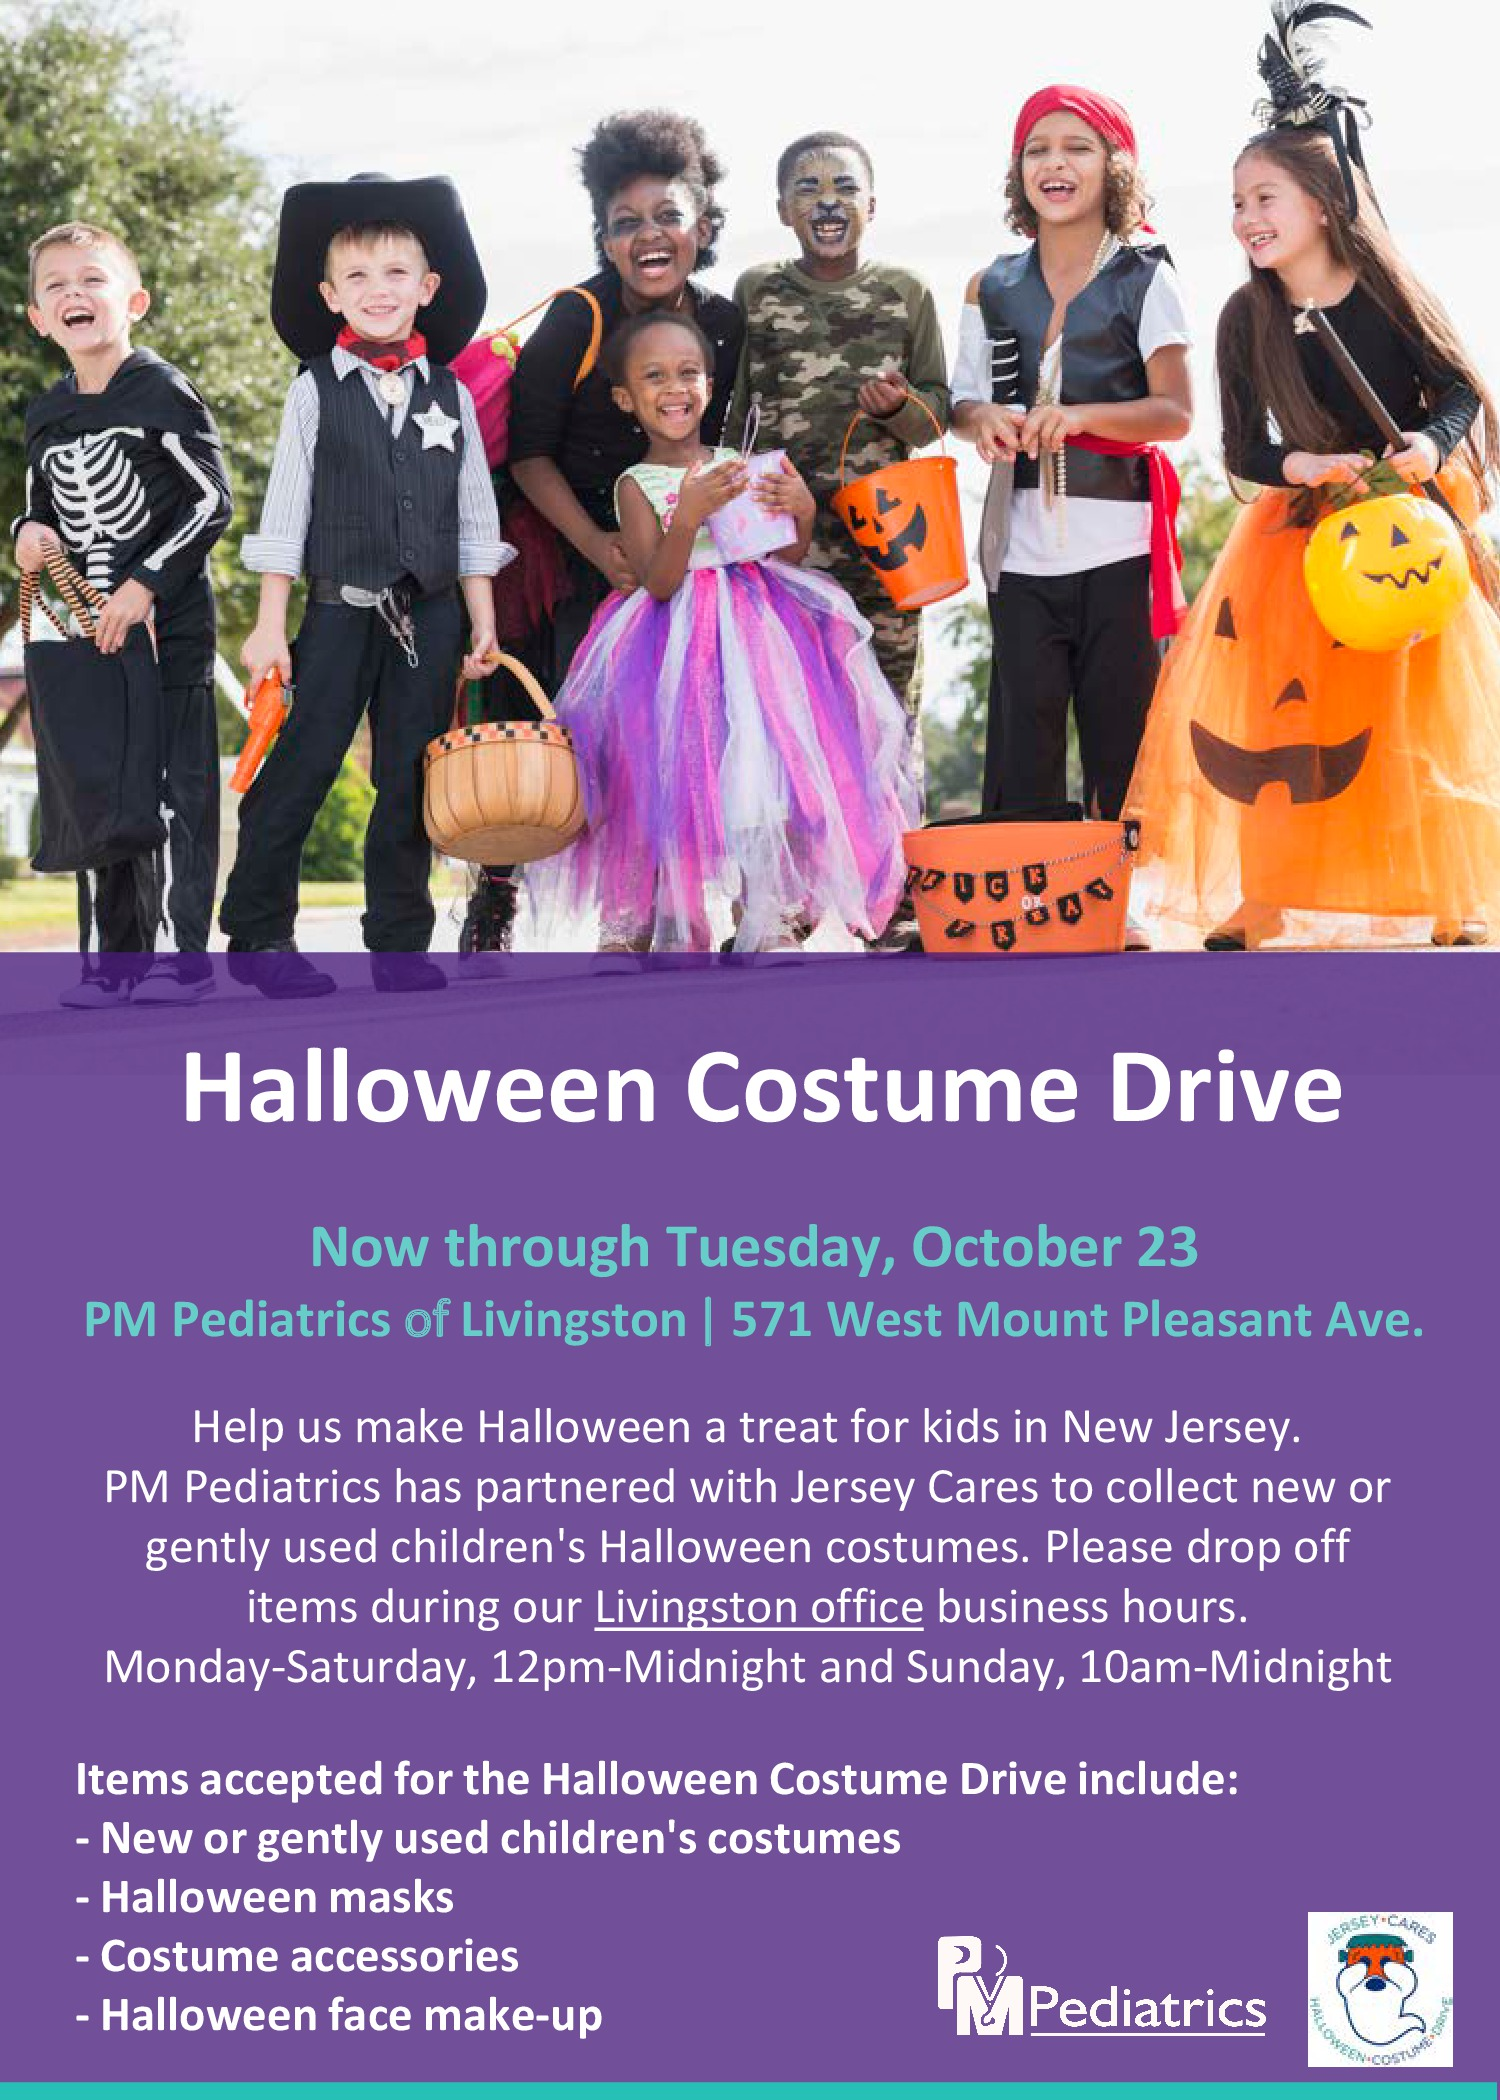 Halloween Costume Drive at PM Pediatrics Livingston